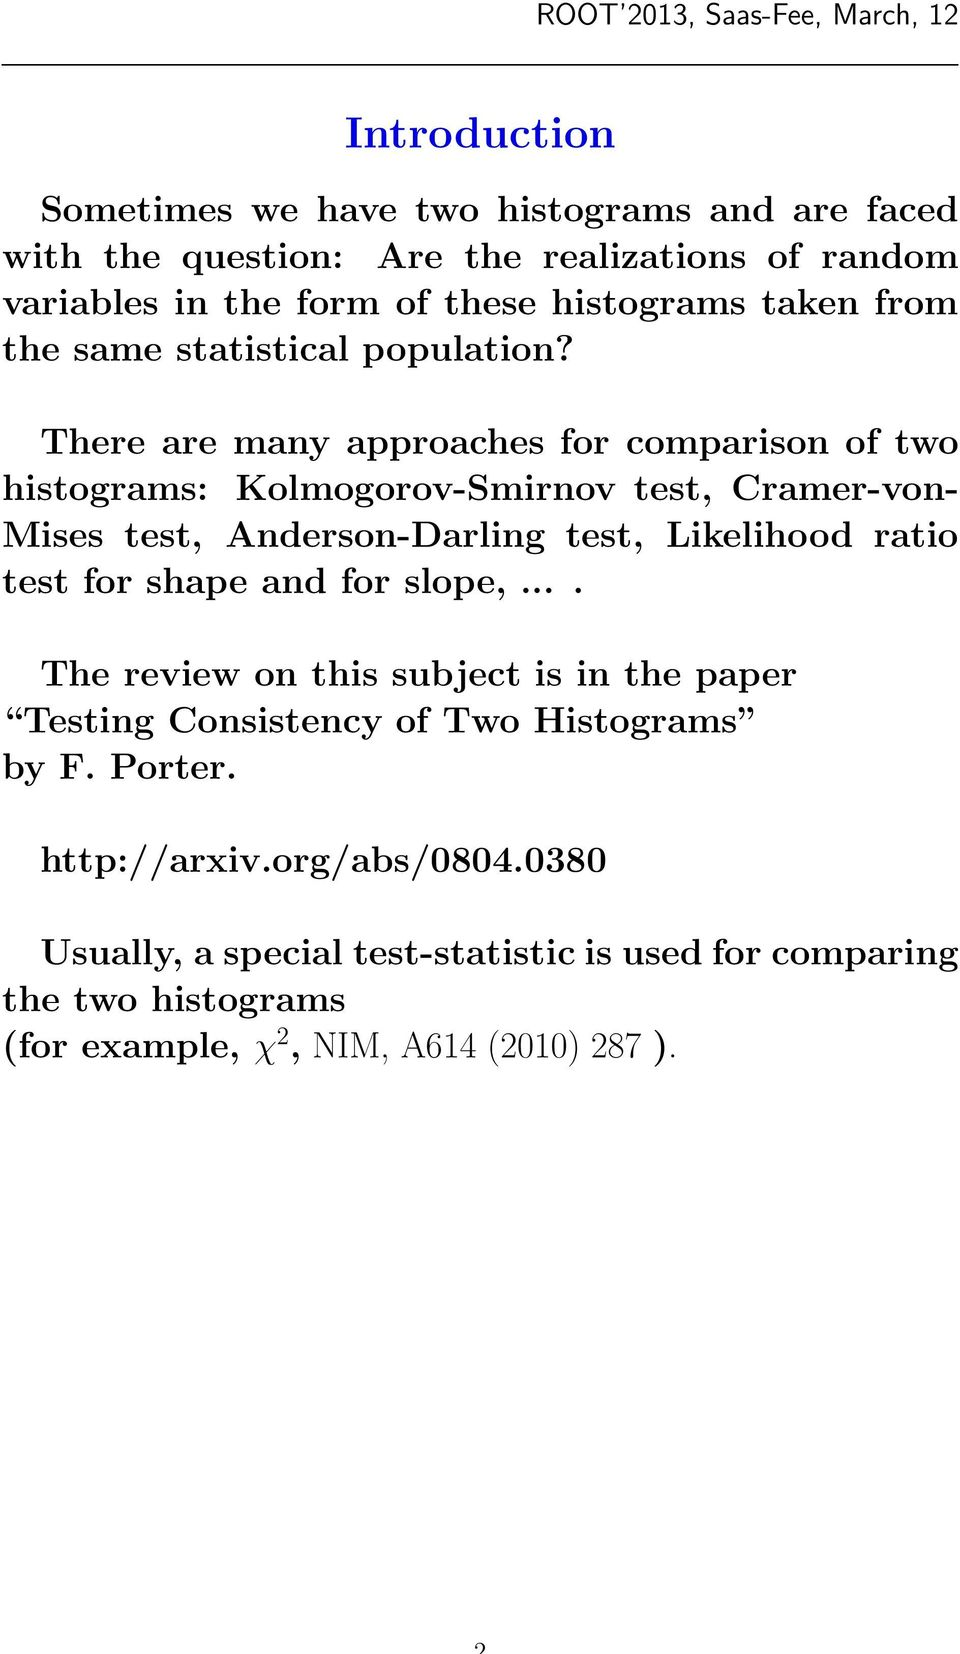 There are many approaches for comparison of two histograms: Kolmogorov-Smirnov test, Cramer-von- Mises test, Anderson-Darling test, Likelihood ratio test for